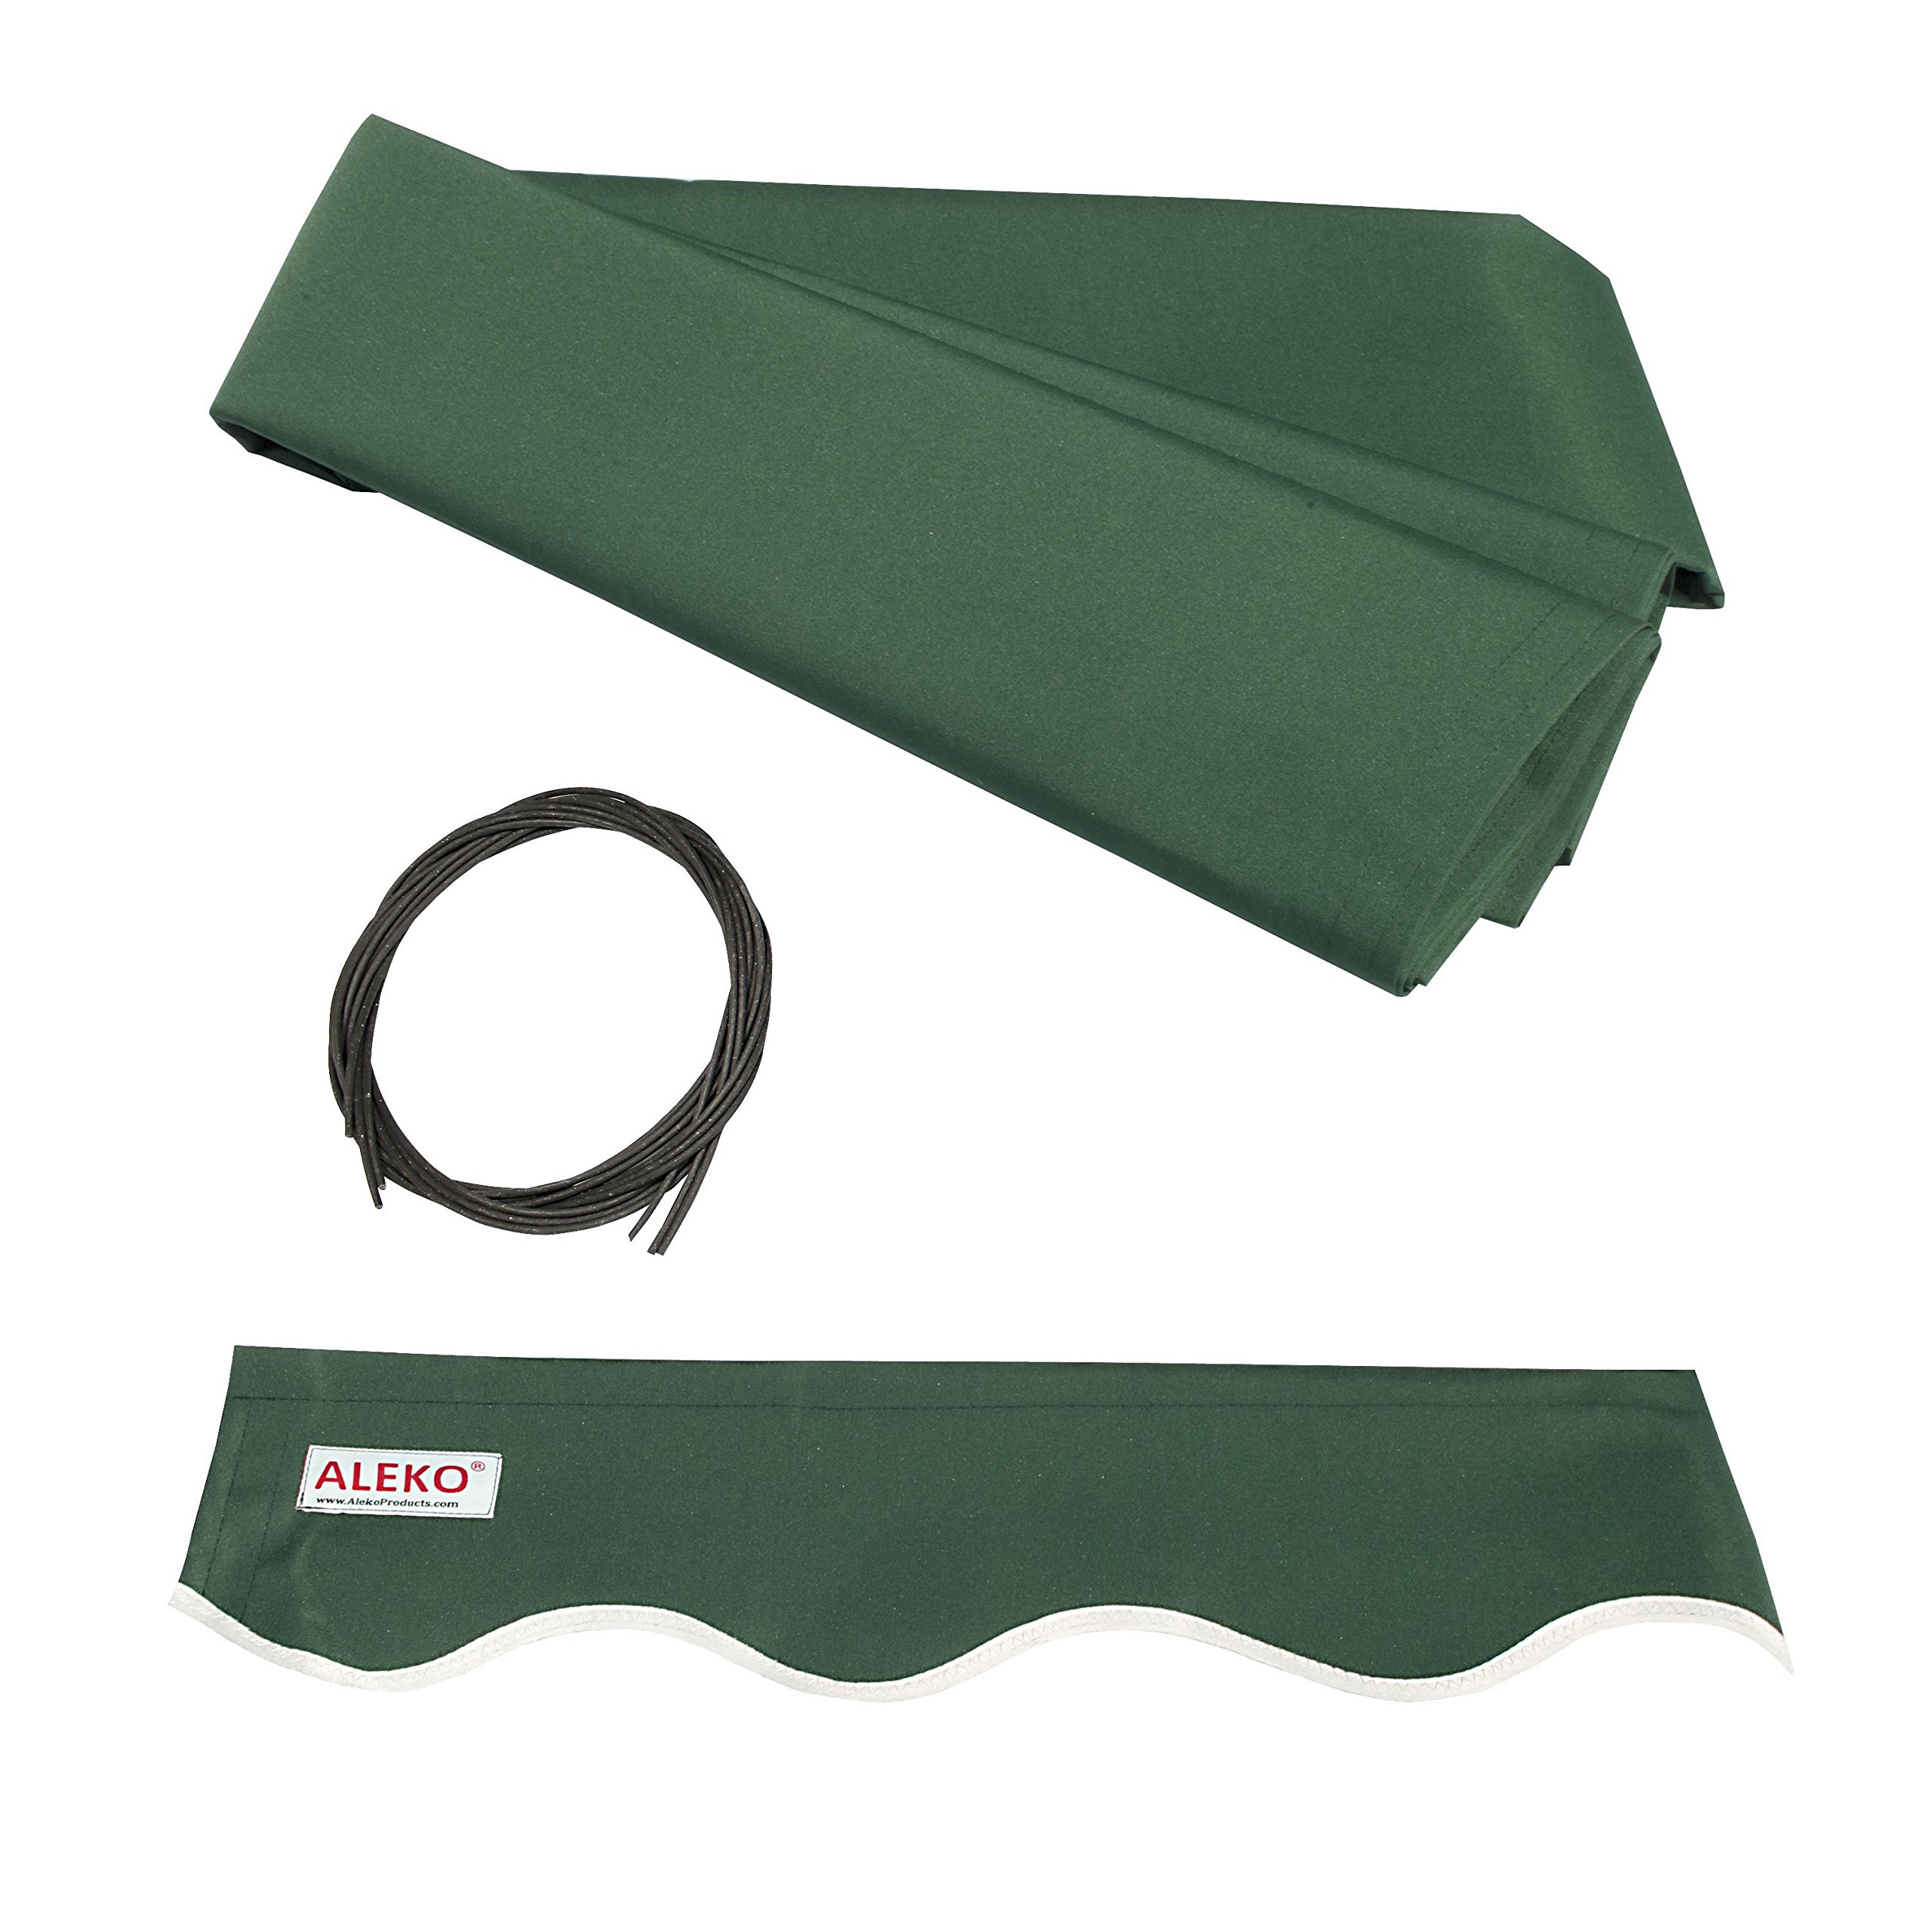 ALEKO FAB13X10GREEN39 Retractable Awning Fabric Replacement 13 x 10 Feet Green